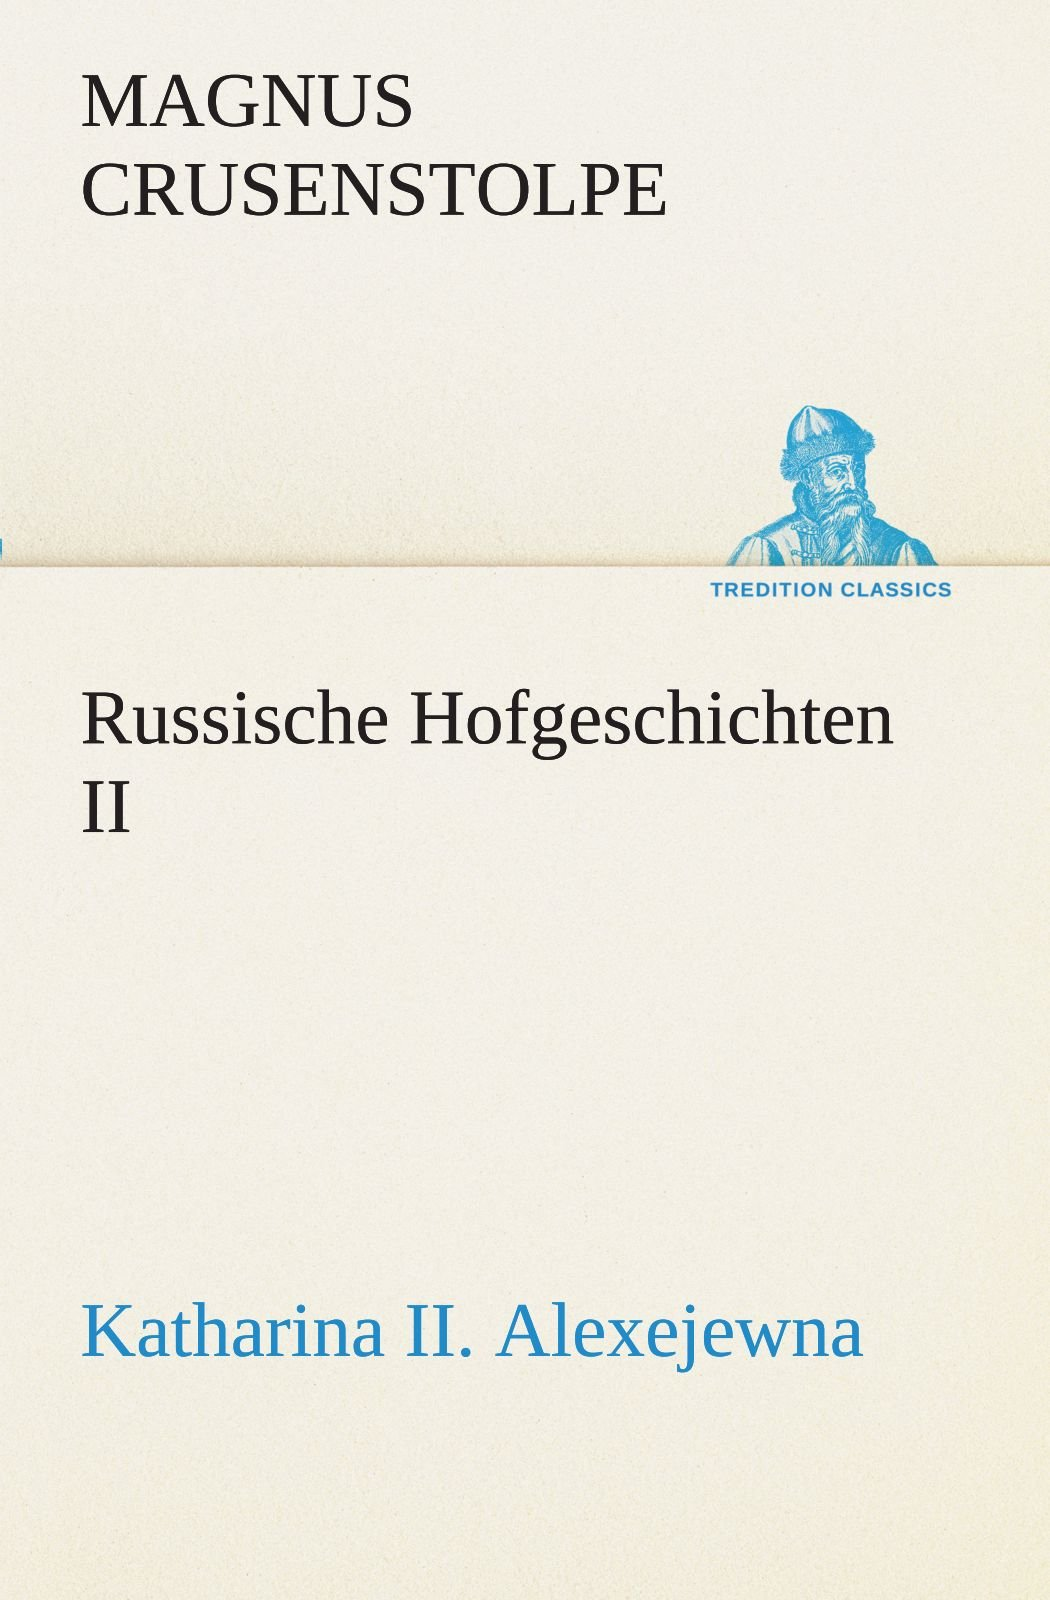 Download Russische Hofgeschichten II: Katharina II. Alexejewna (TREDITION CLASSICS) (German Edition) PDF